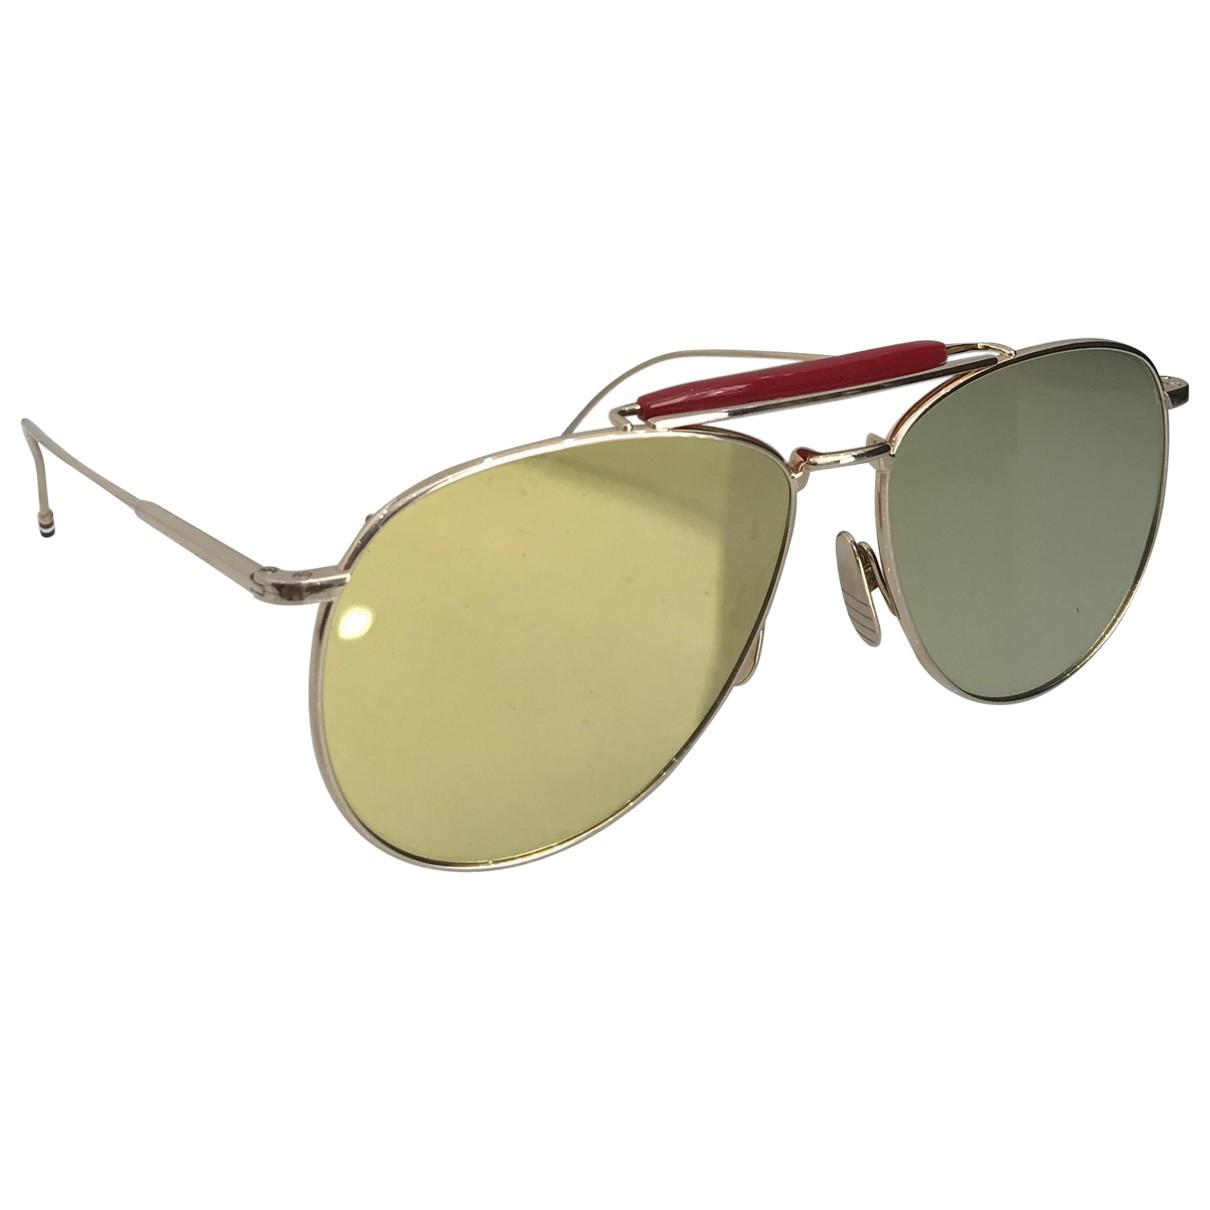 ffff687a714 Lyst - Thom Browne Sunglasses in Metallic for Men